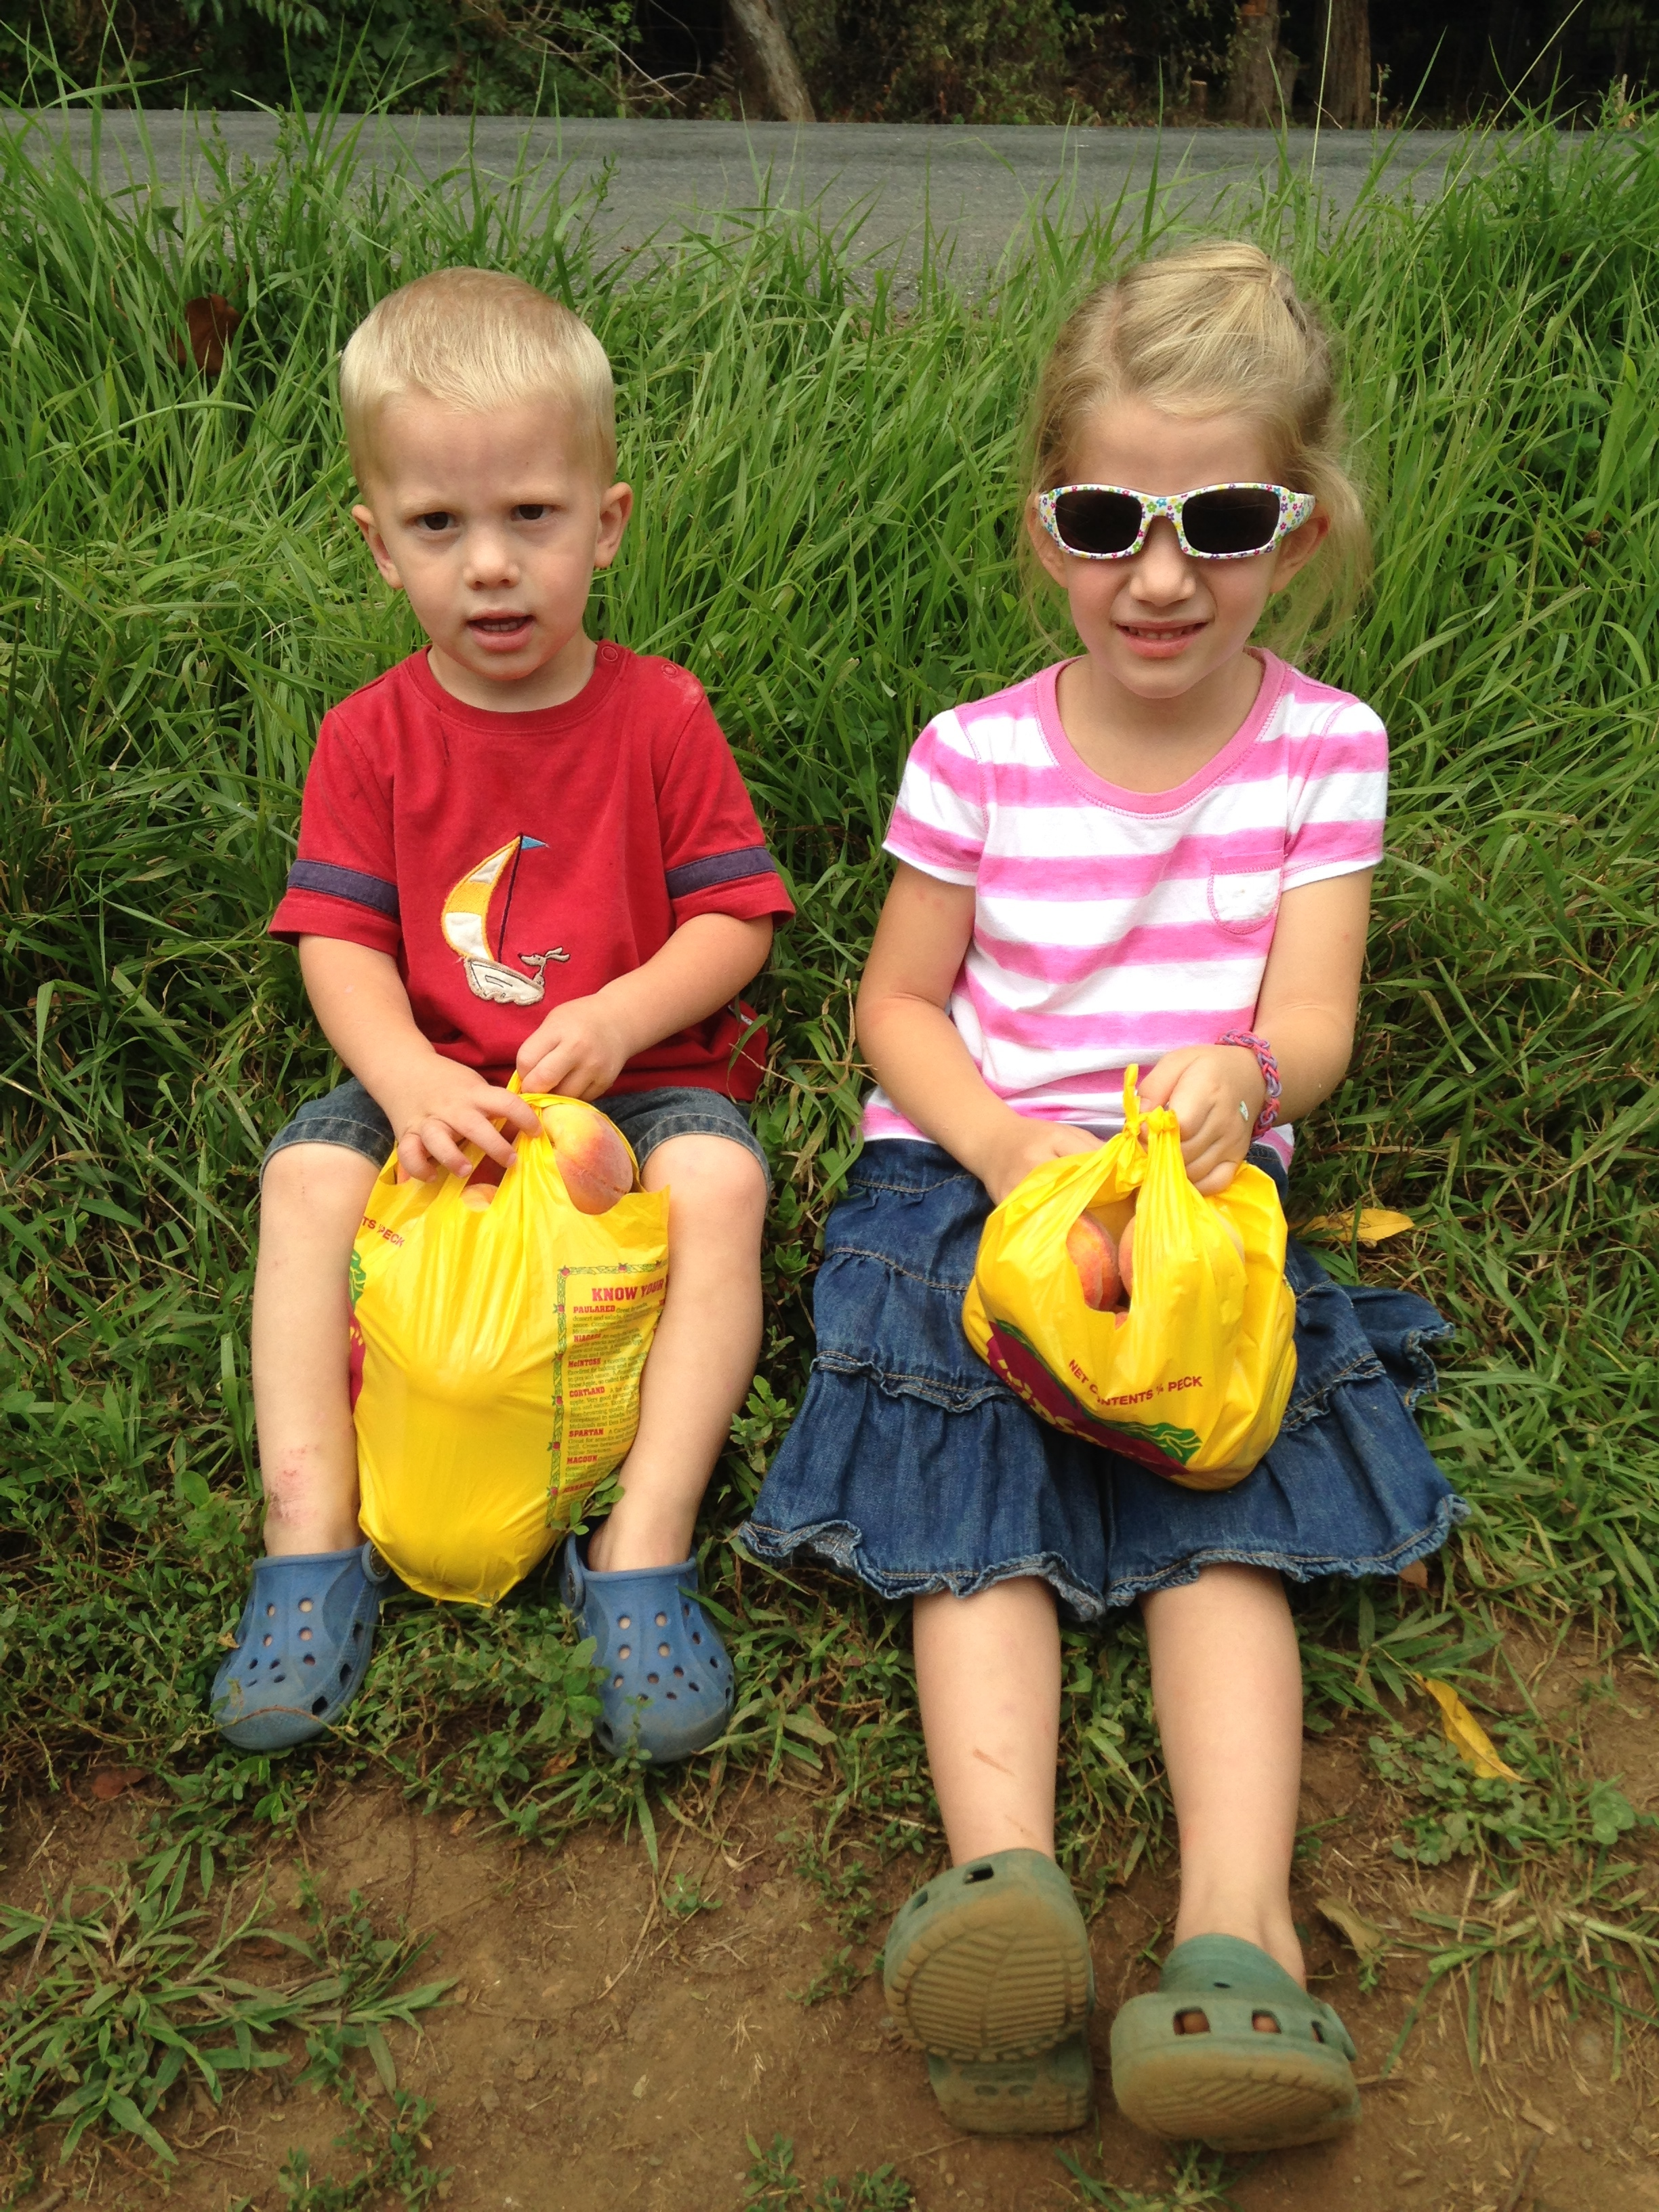 Kaylin & Kolby with their bags of peaches.